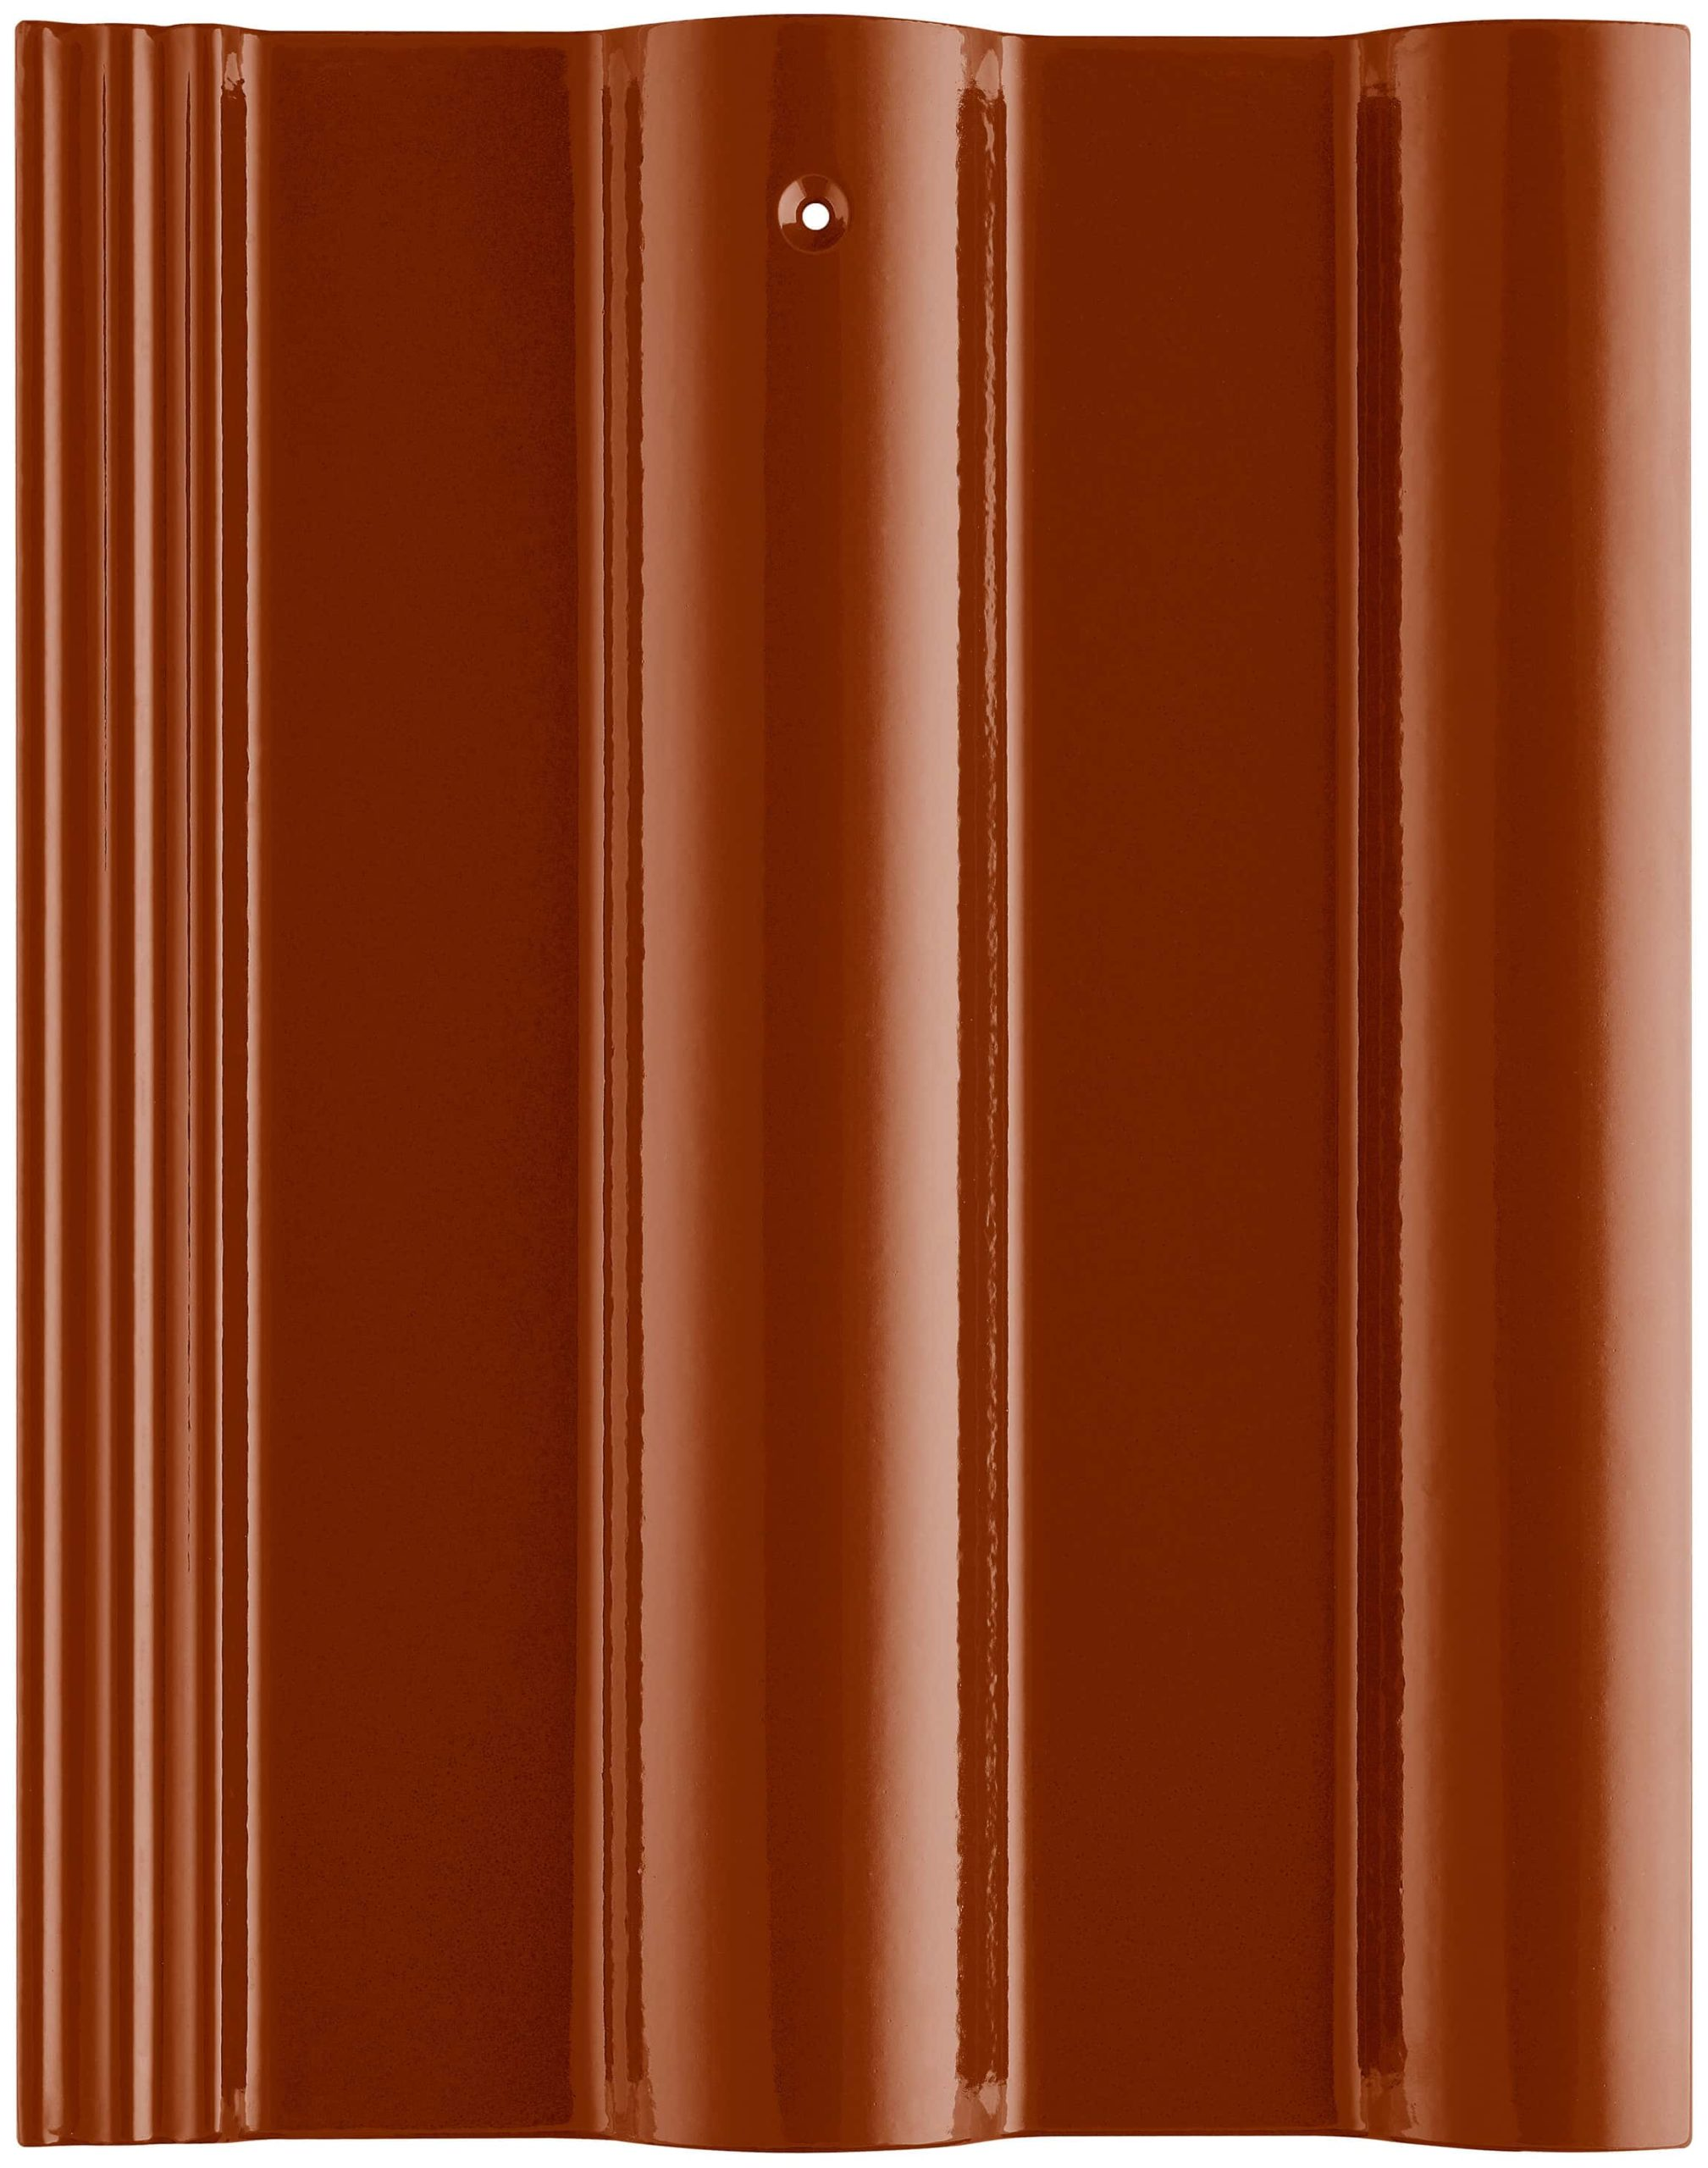 SCG Ceramic Roof Tile - EXCELLA Classic Carnelian Brown